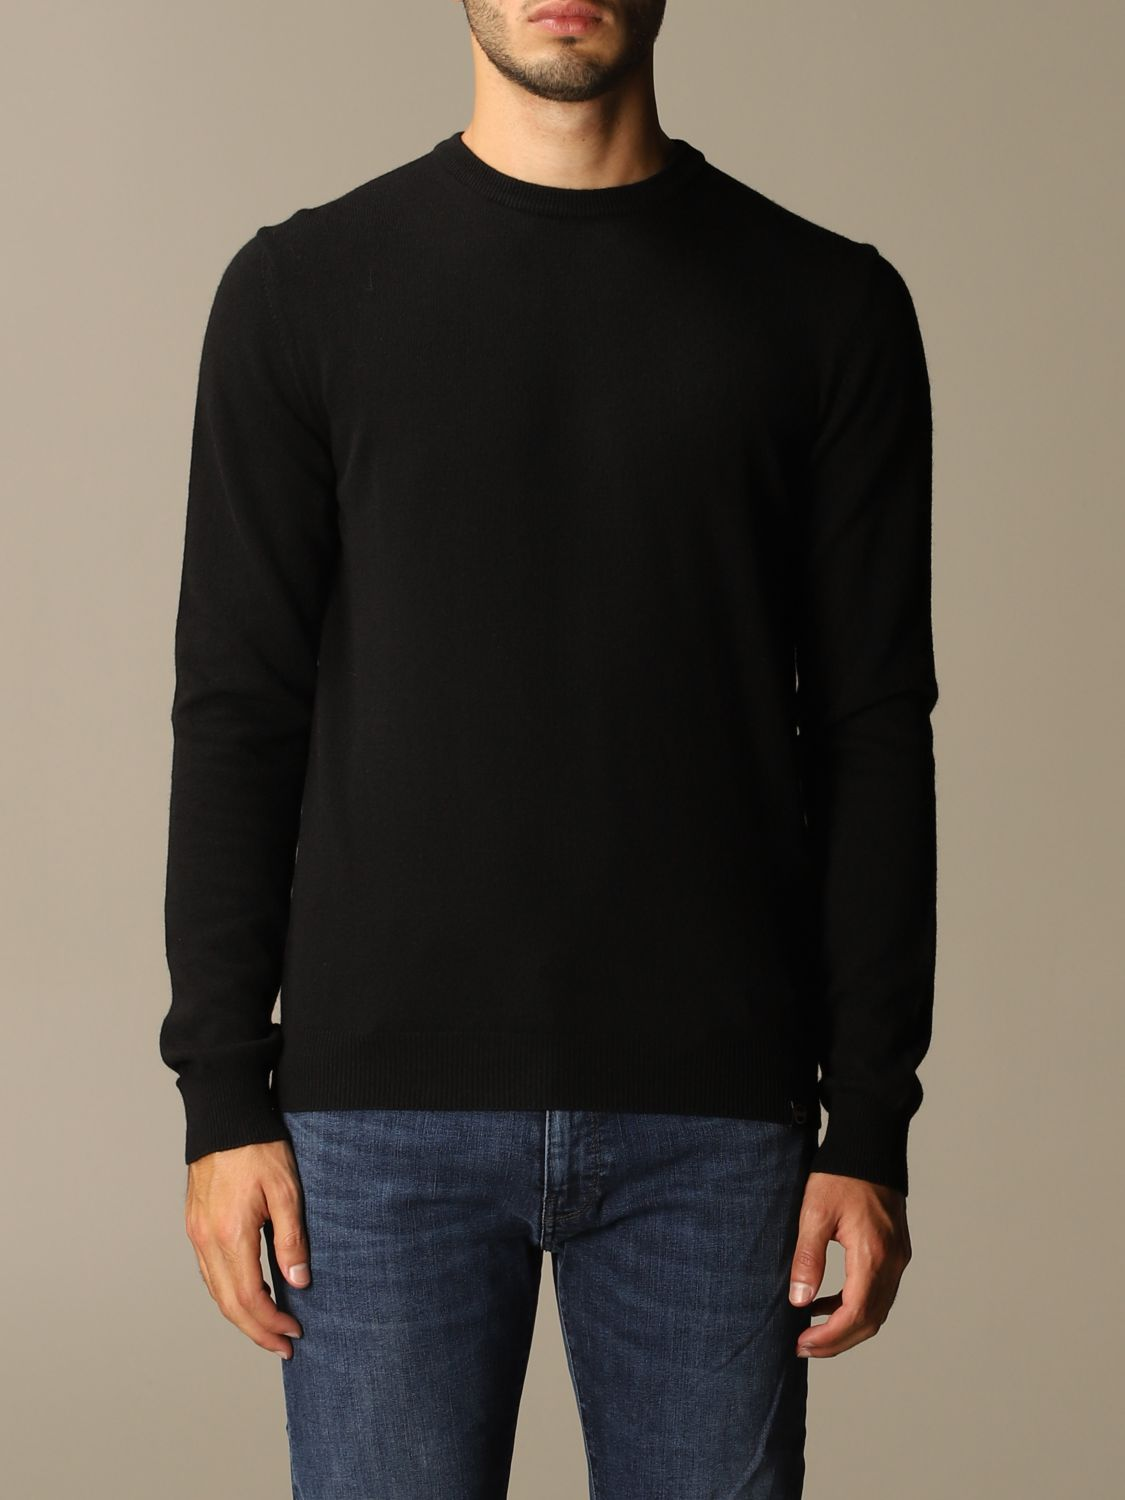 Sweater Colmar: Colmar crewneck sweater in wool and cashmere blend black 1